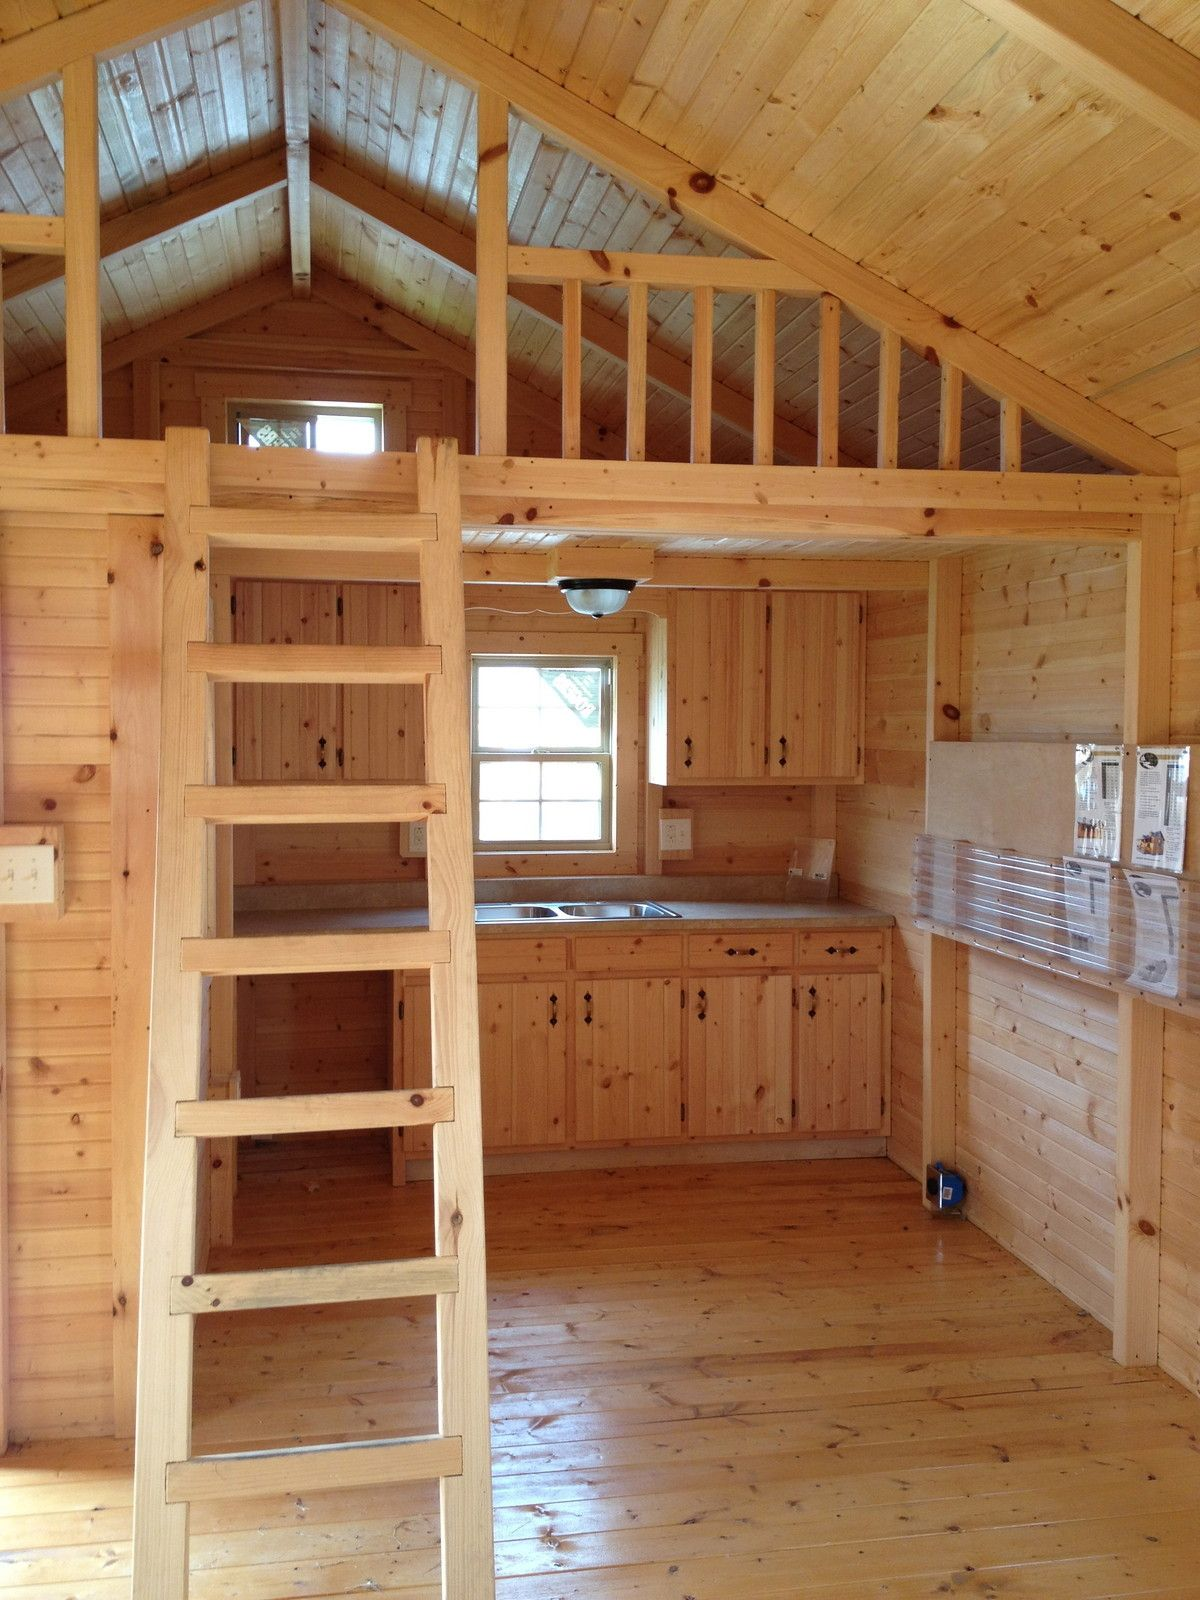 Tiny house ebay 14x24 cabin kit tiny homes pinterest Cottage with loft